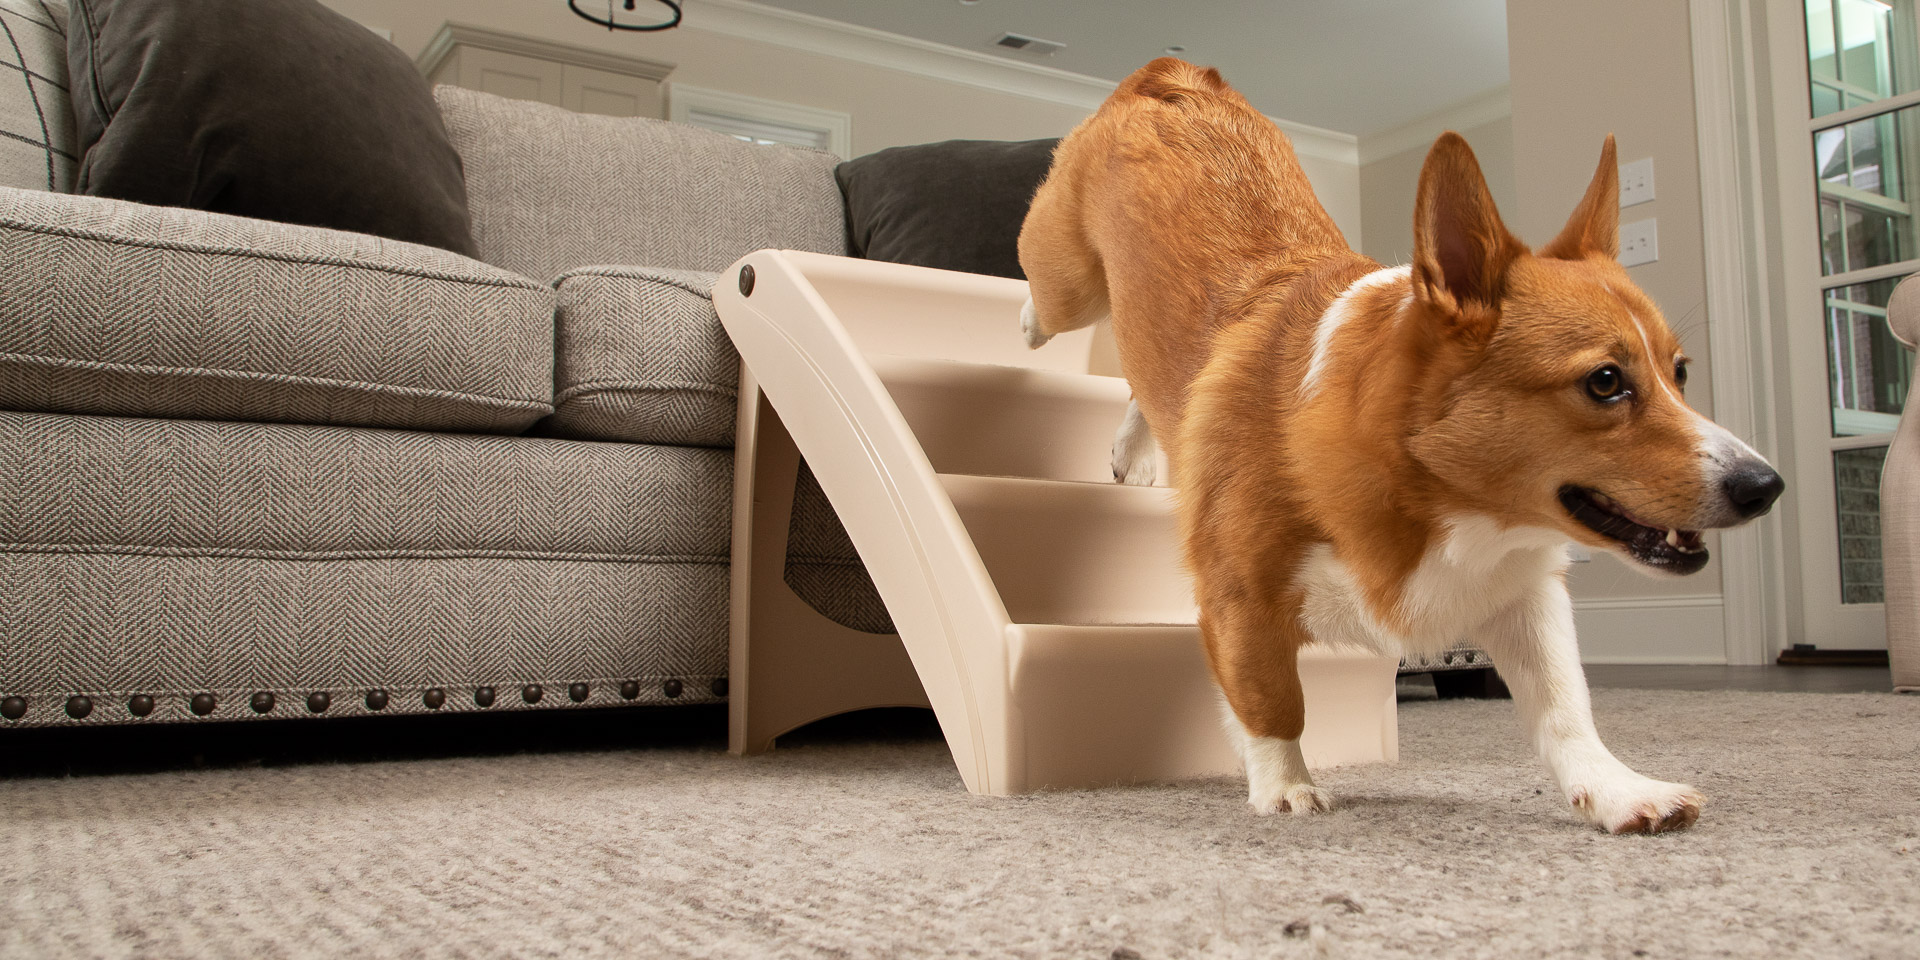 Dog running down a set of folding steps off of a couch